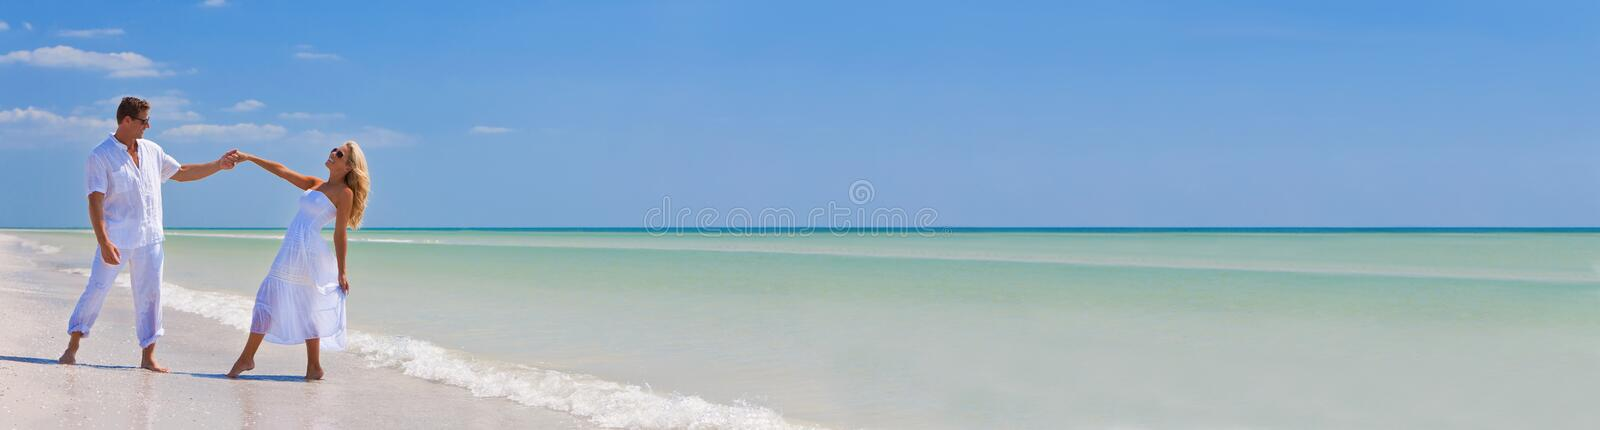 Happy Young Couple Dancing Holding Hands on Beach Panorama stock images